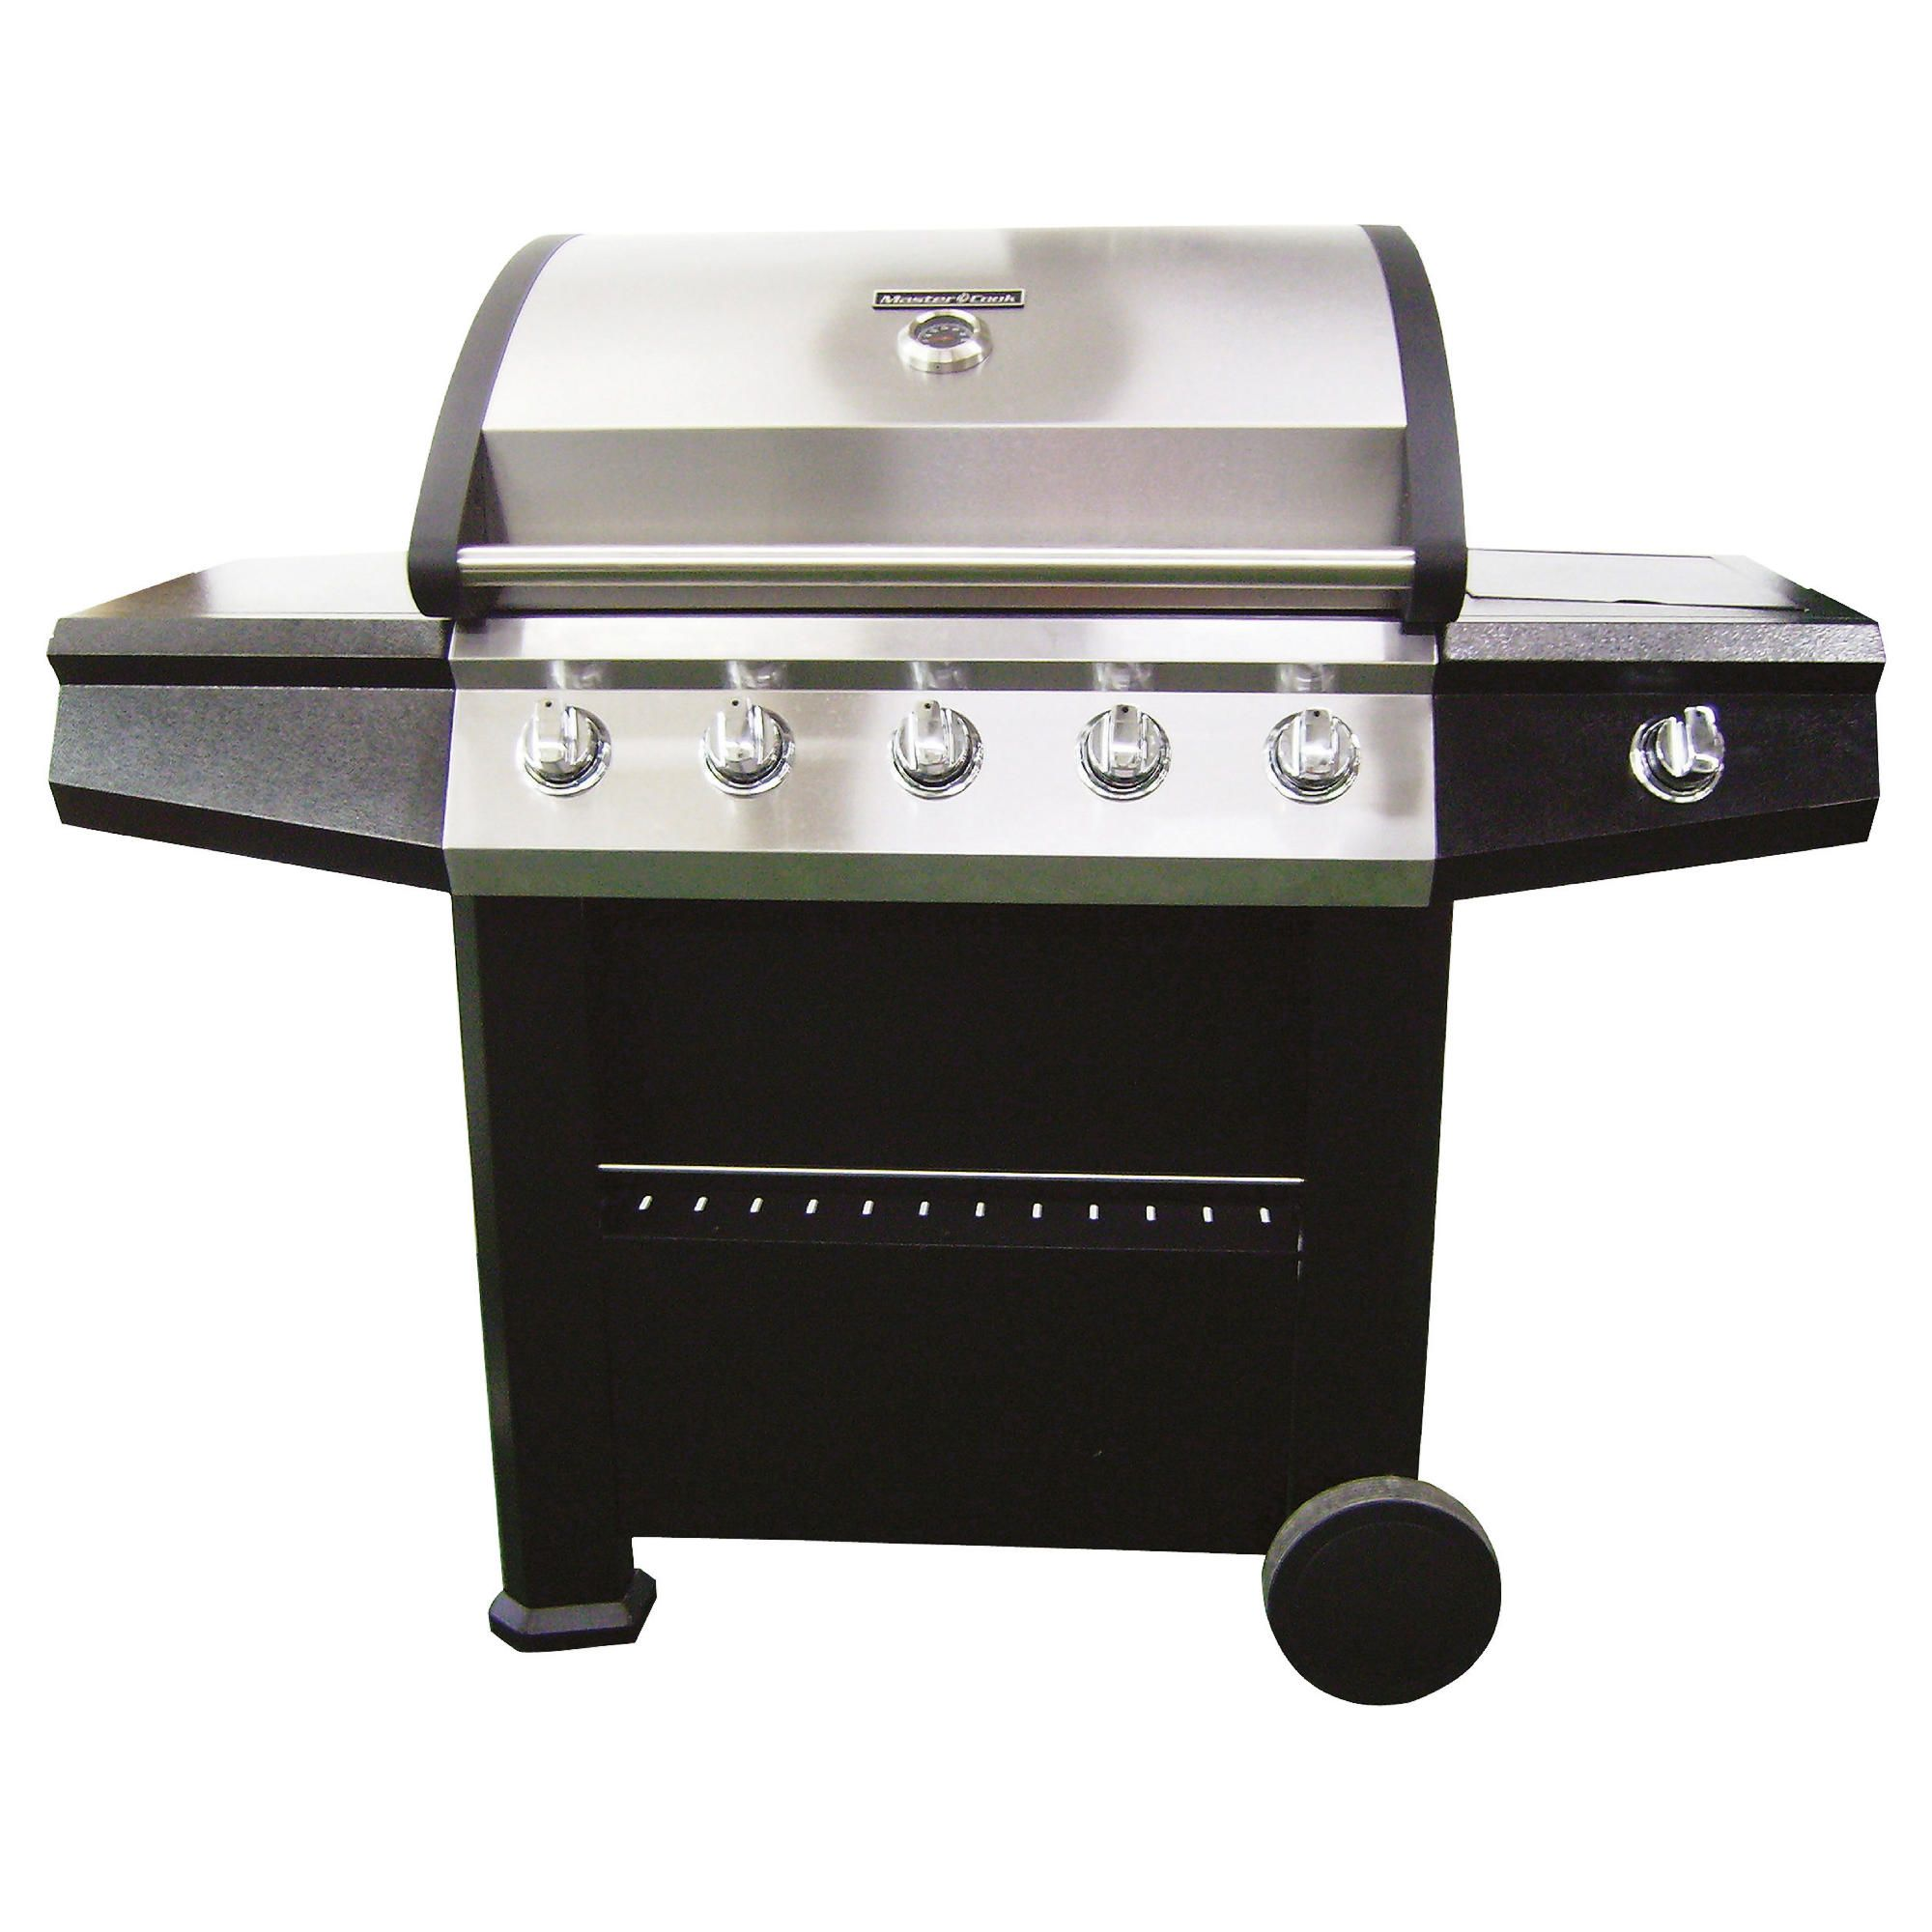 Mastercook 5 BURNER  GAS GRILL at Tesco Direct